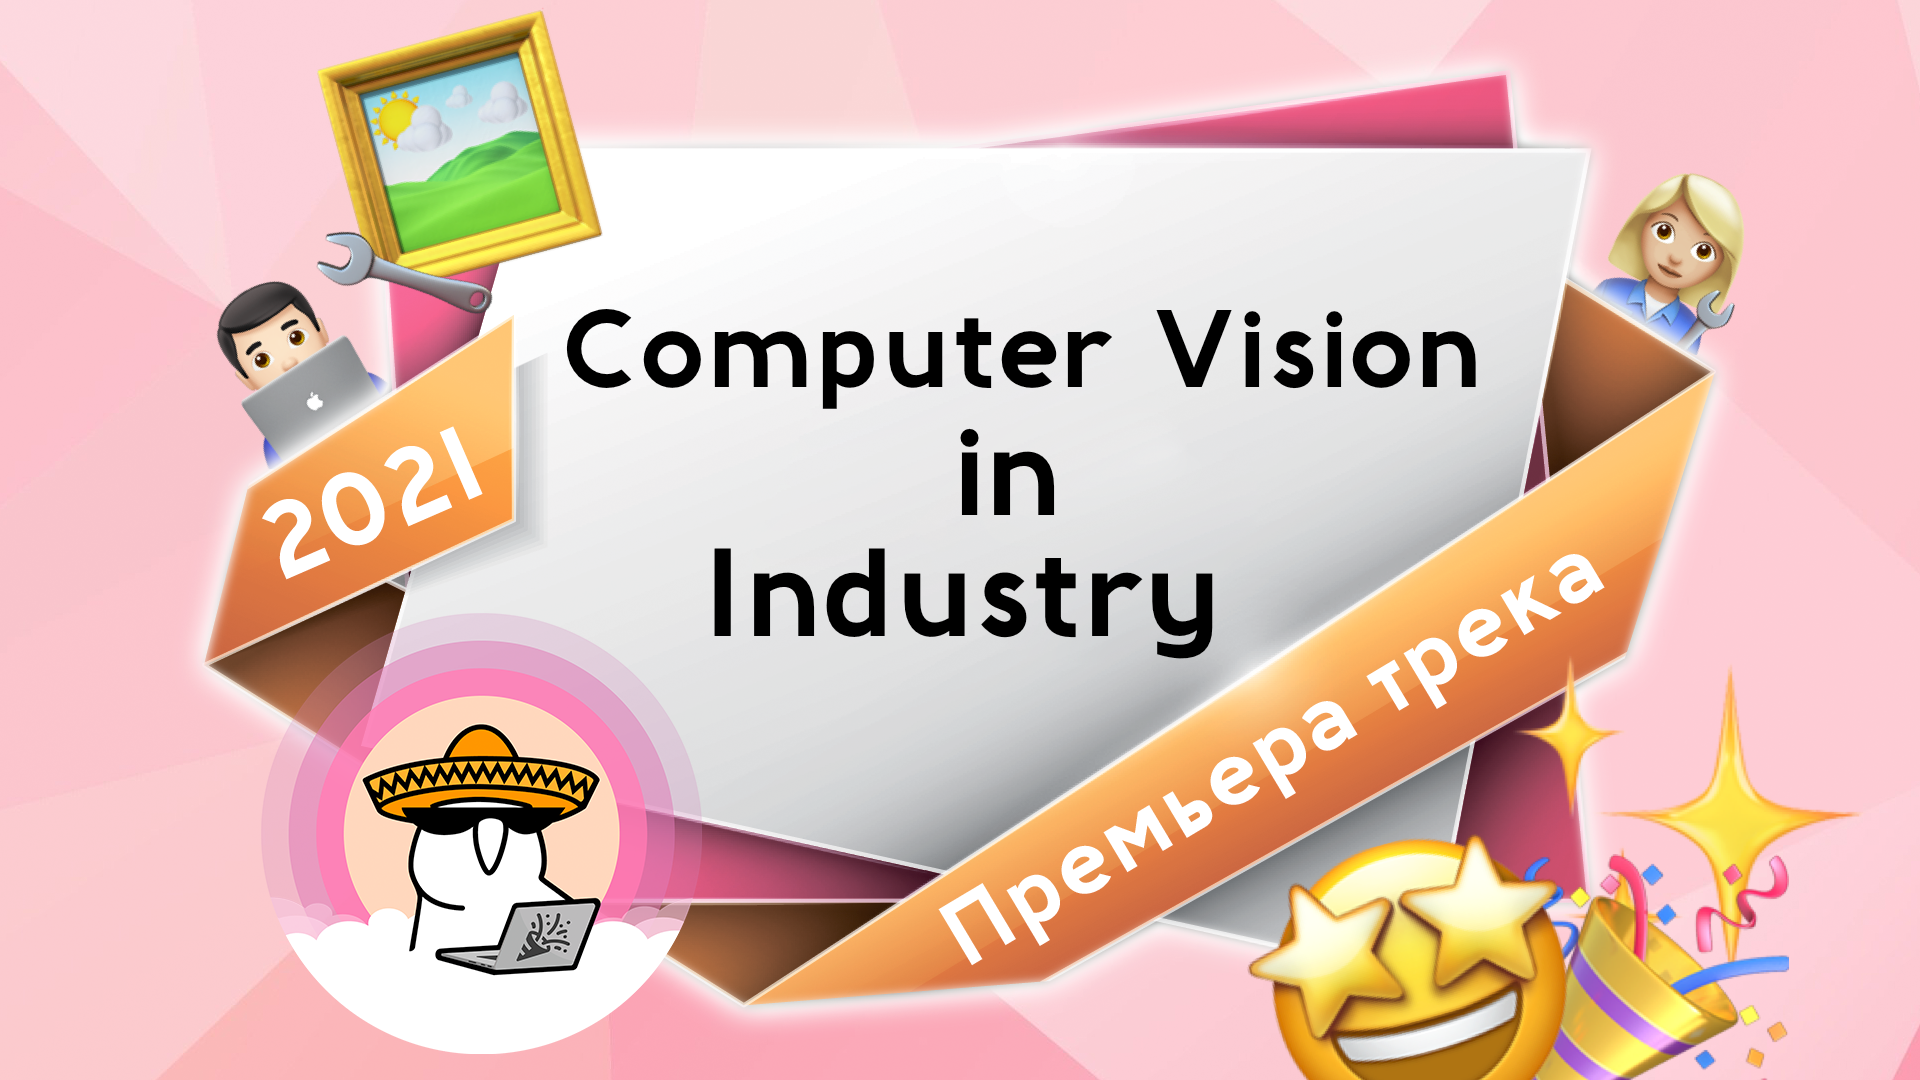 Computer Vision in Industry